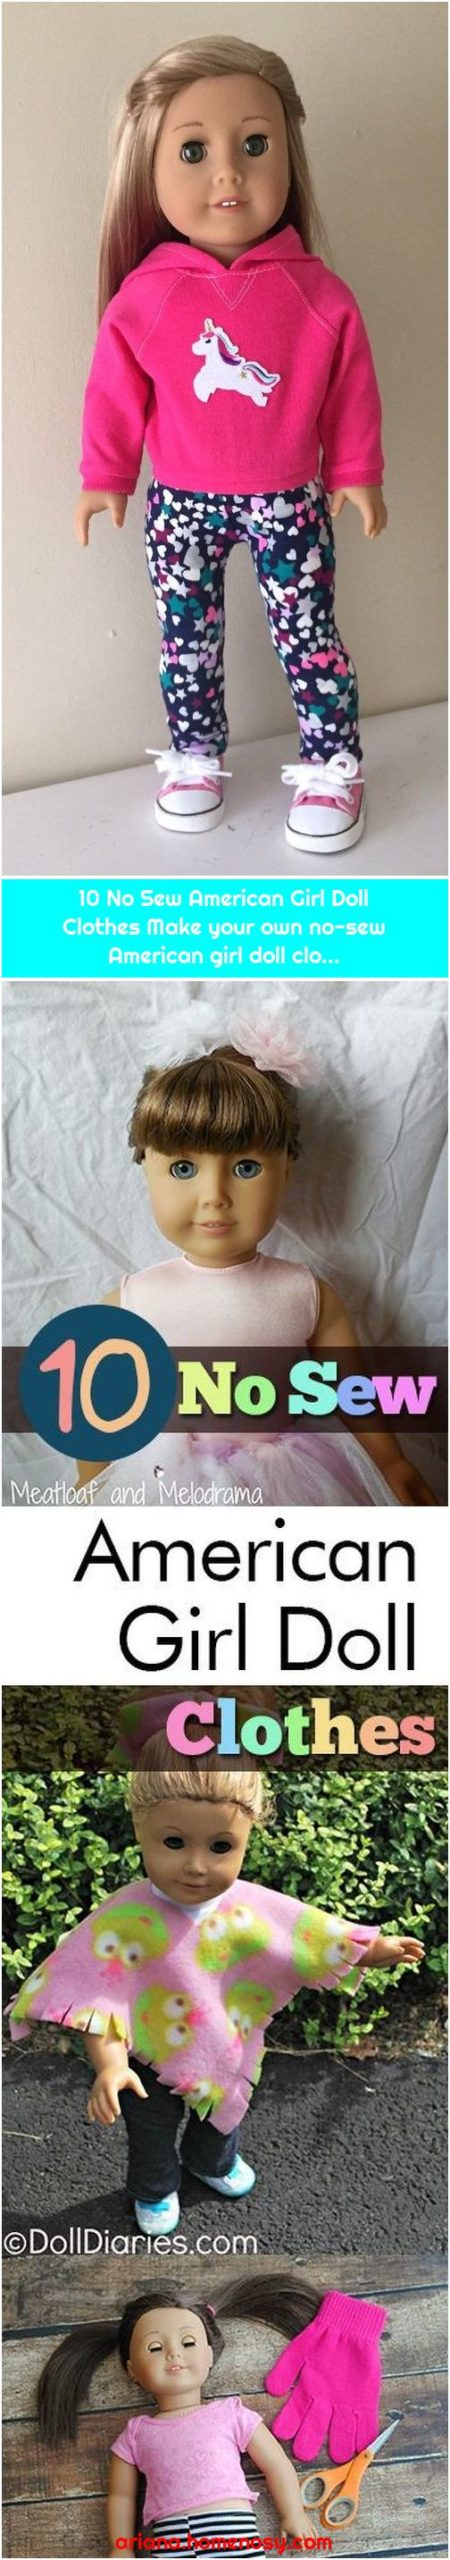 10 No Sew American Girl Doll Clothes Make your own no-sew American girl doll clo...